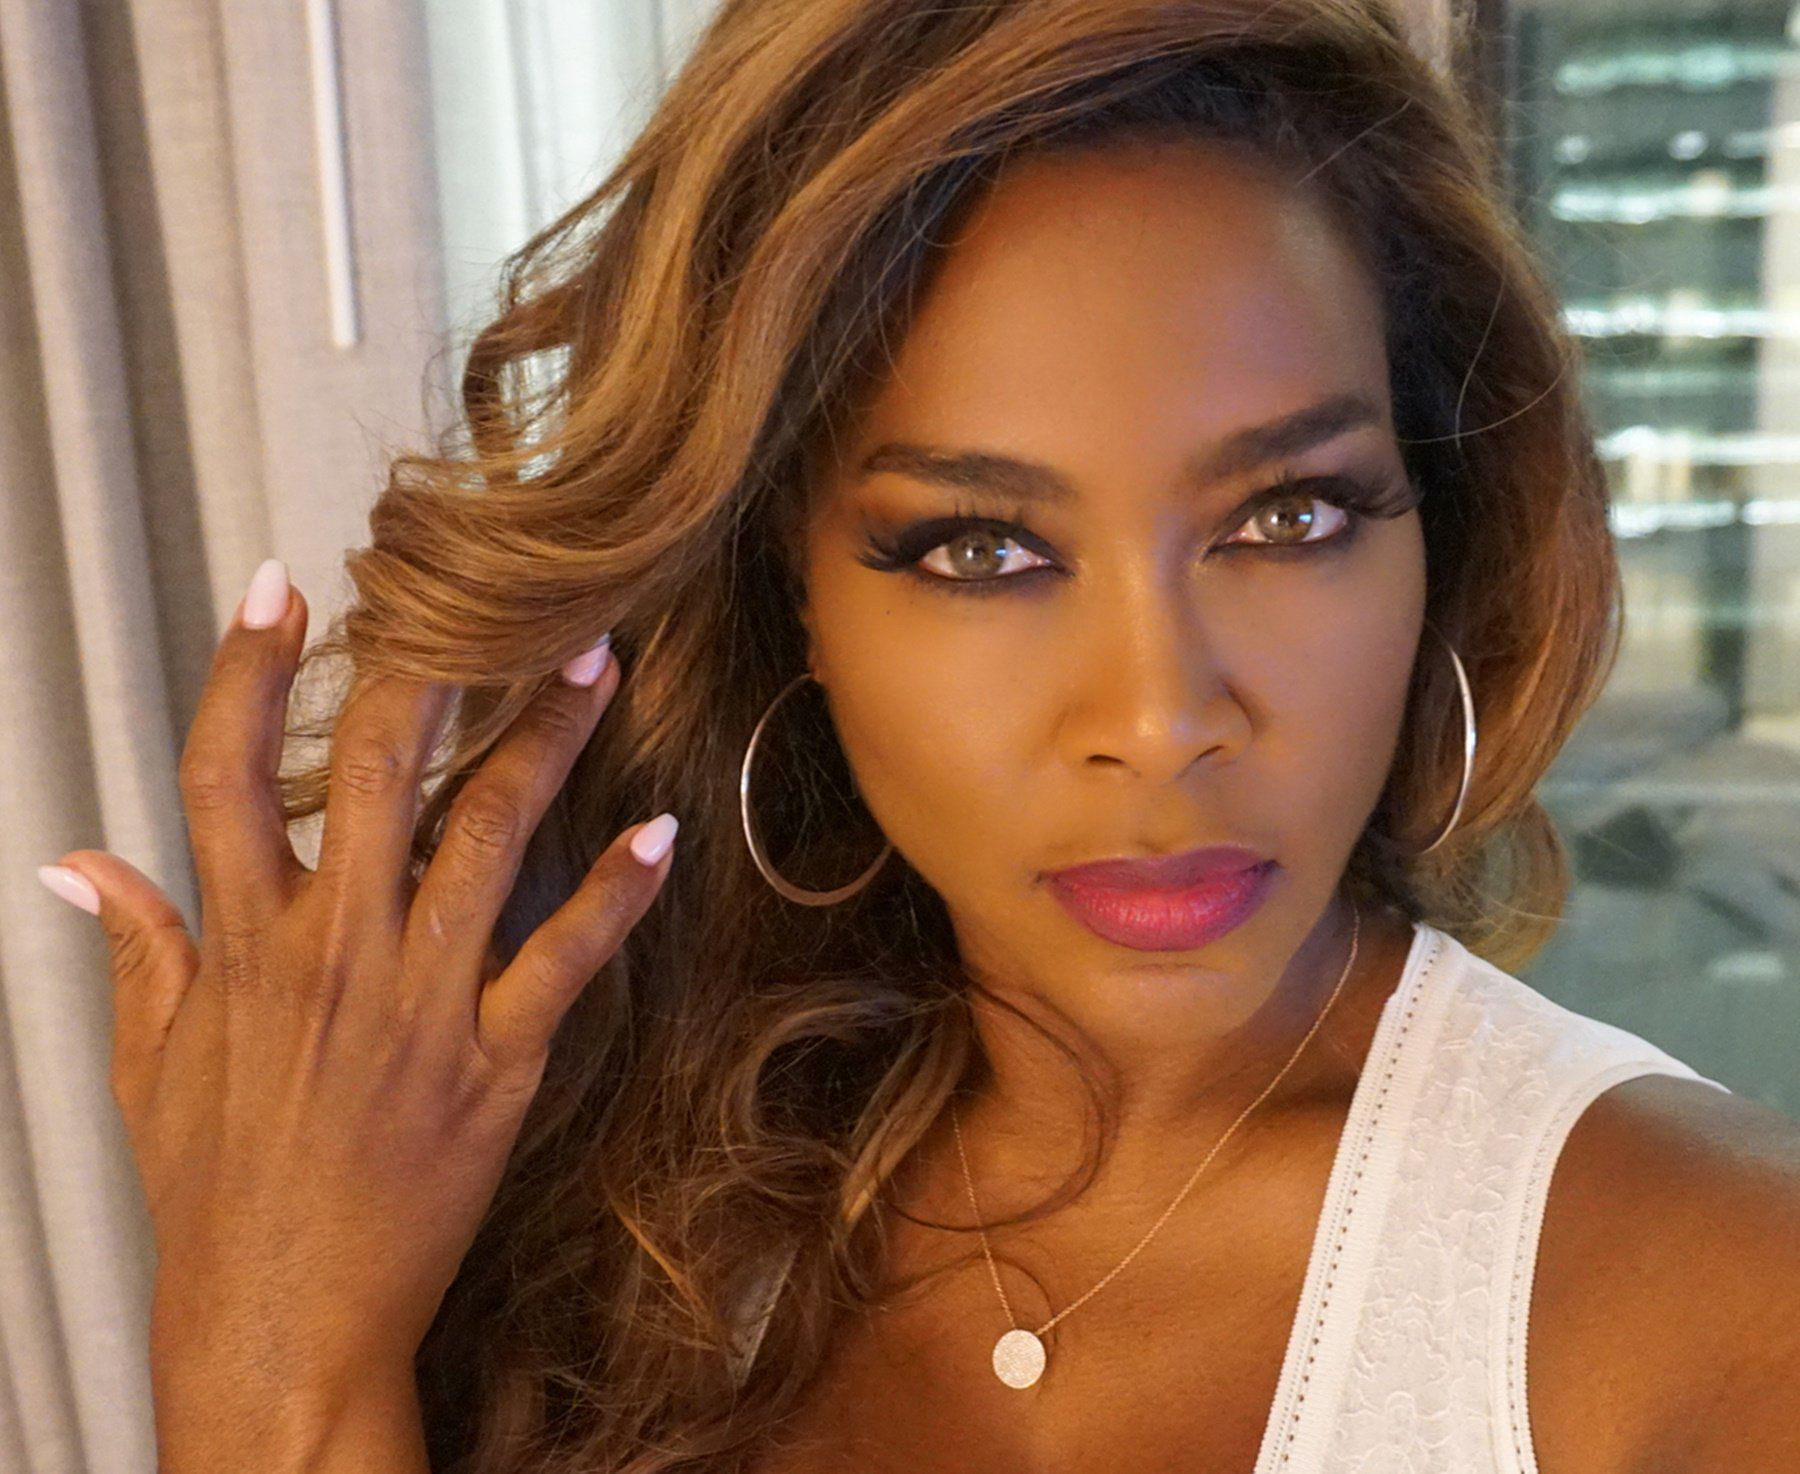 Kenya Moore Supports A Non-Profit Organization That Supports Families Fighting Infertility